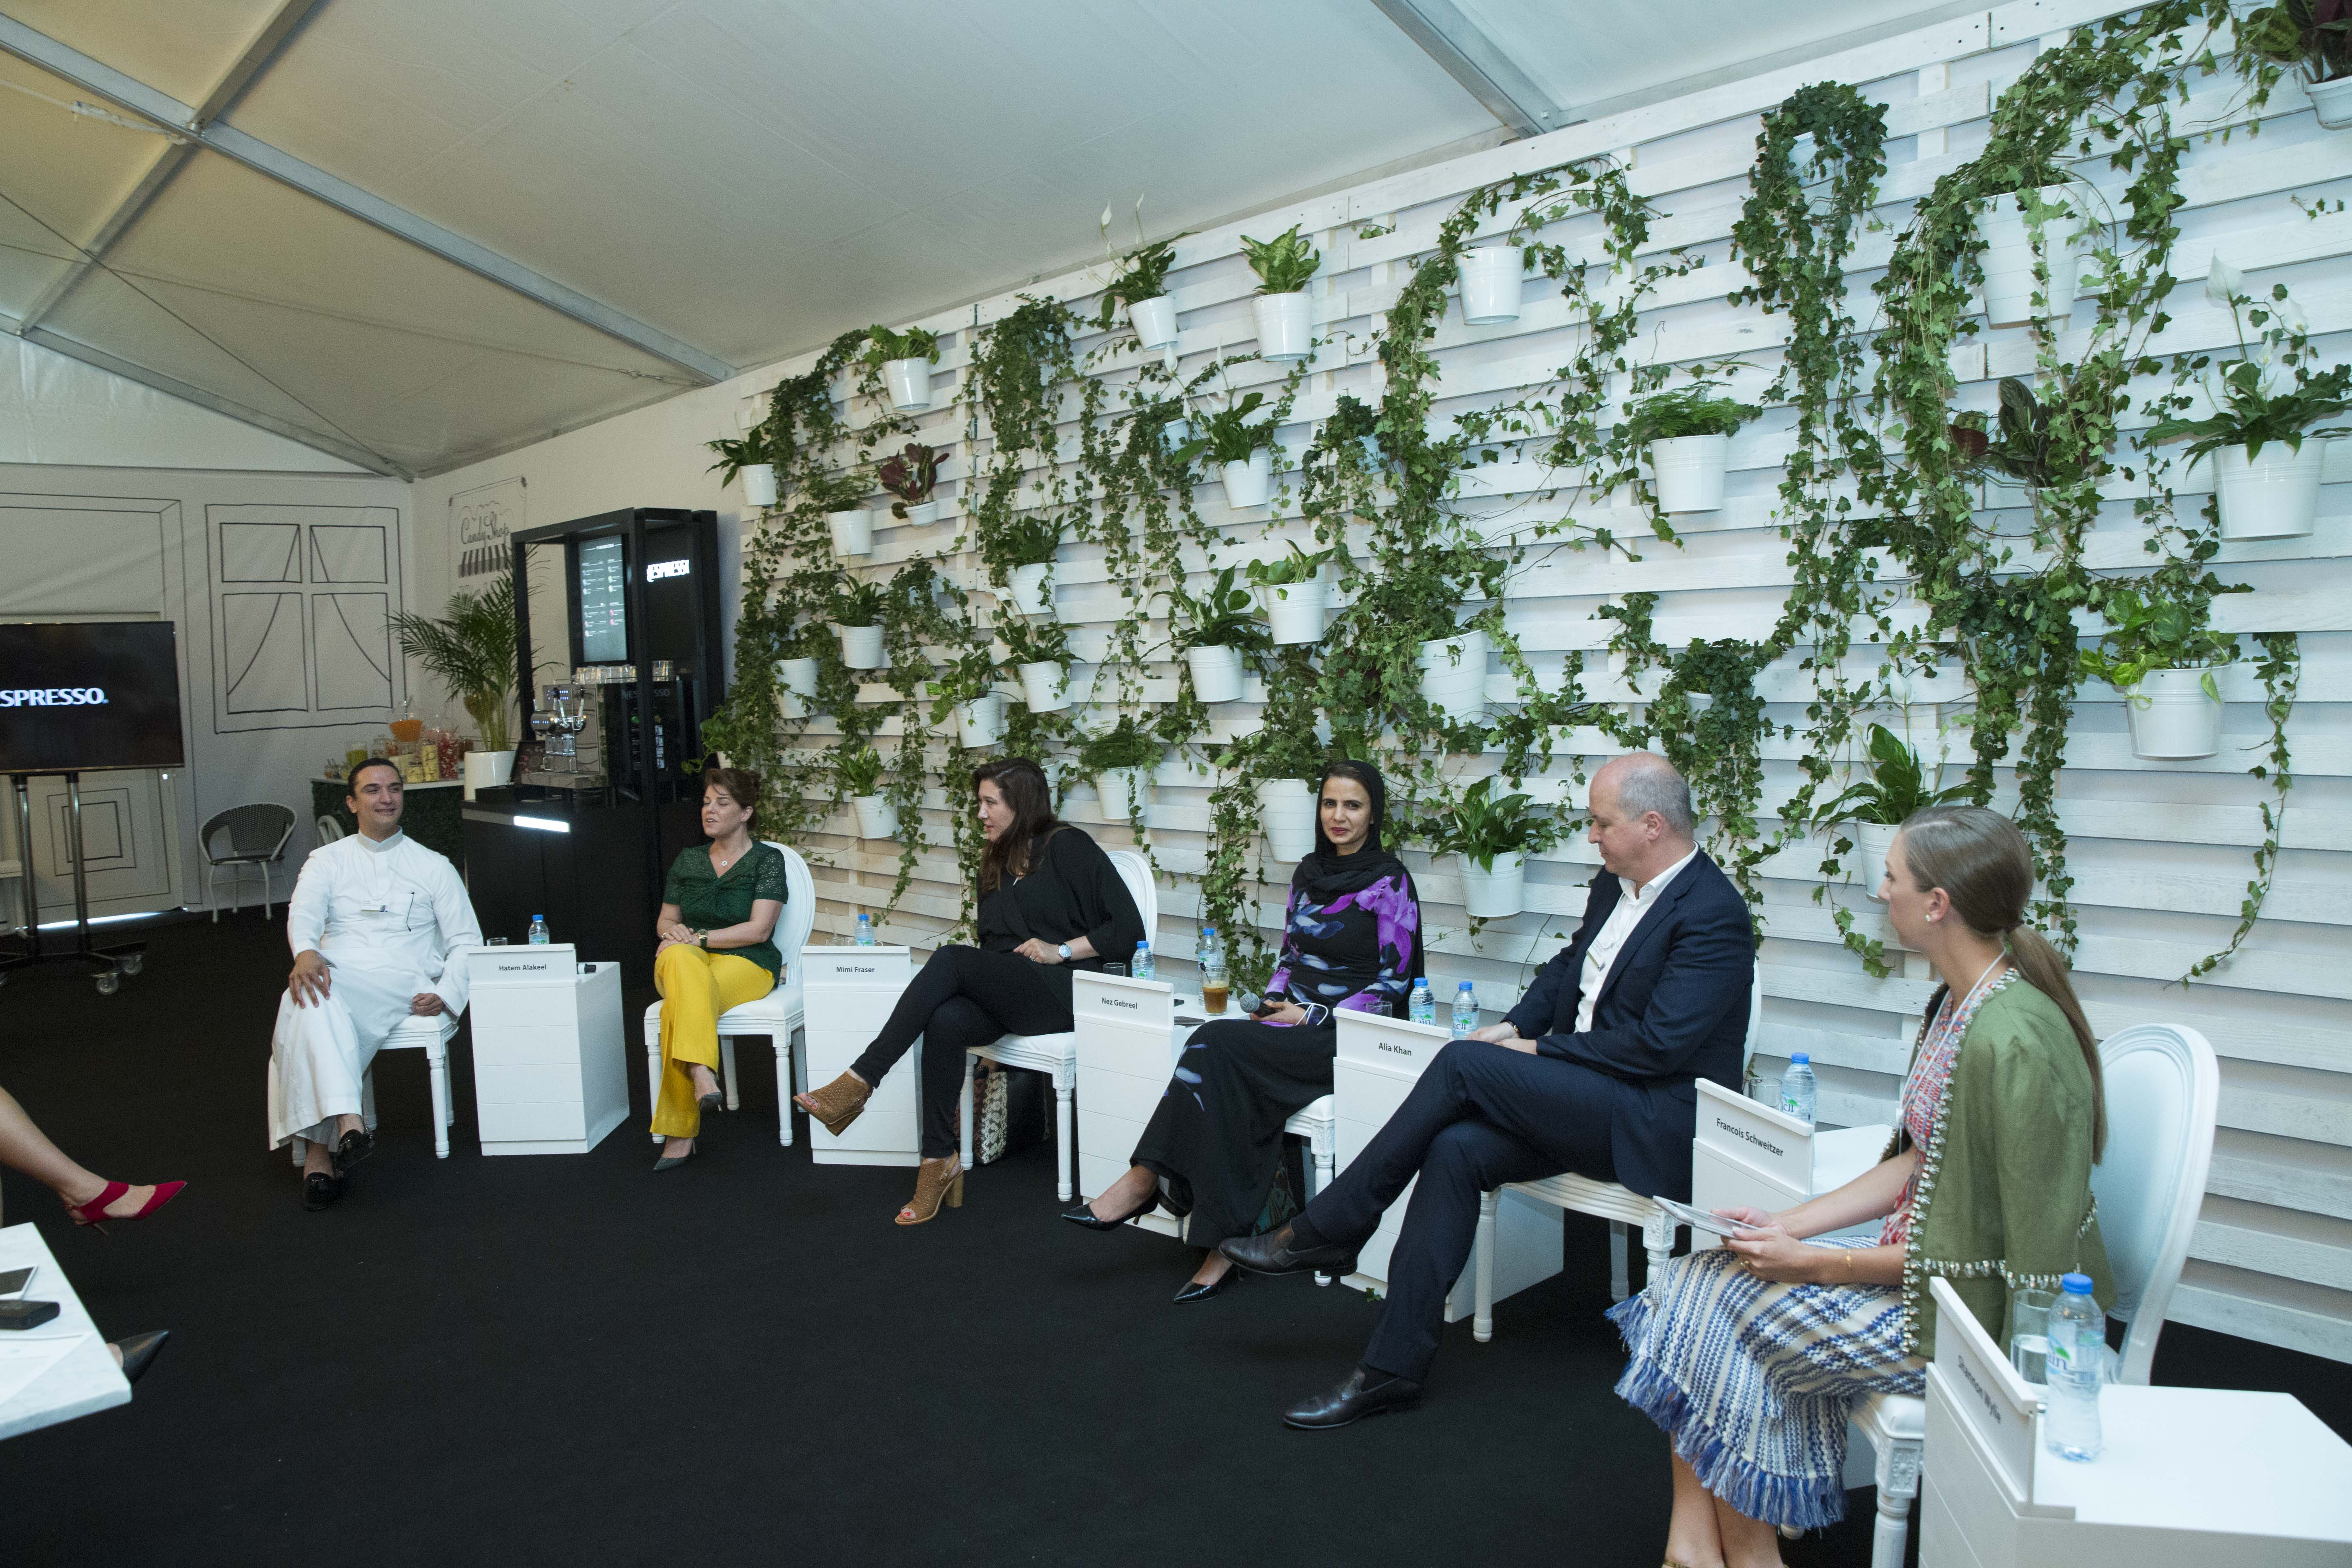 Inside Arab Luxury World Discussing Fashion Trends In The Middle East Islamic Fashion Design Council